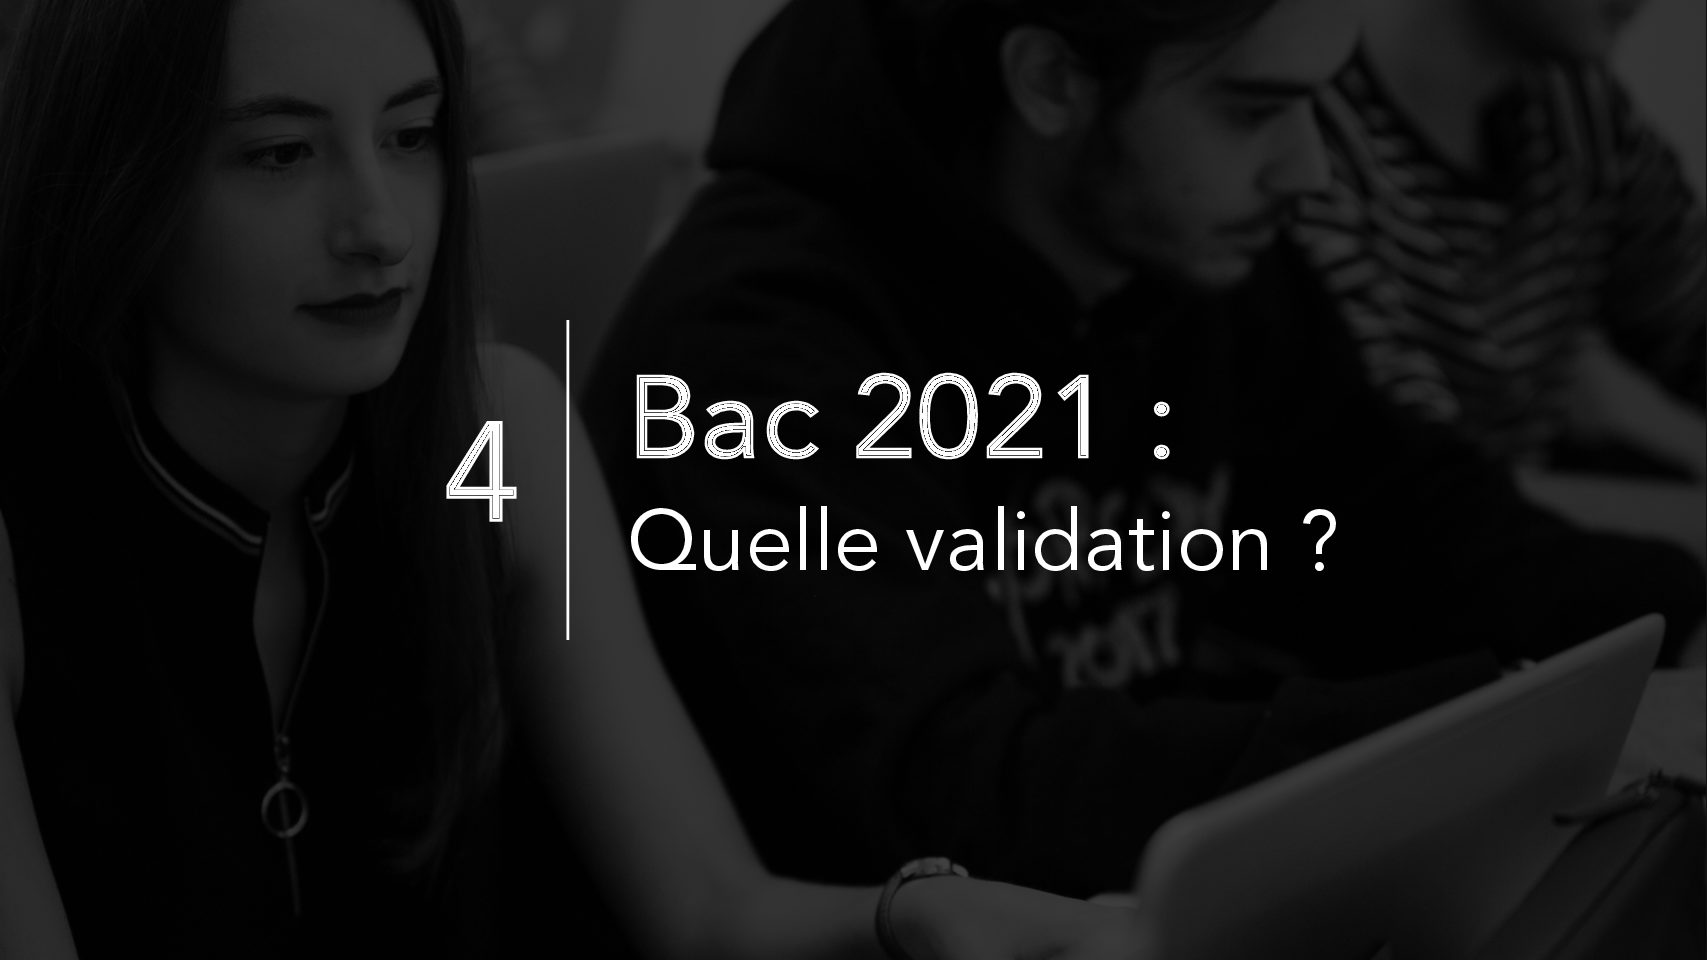 Bac 2021 : quelle validation ?